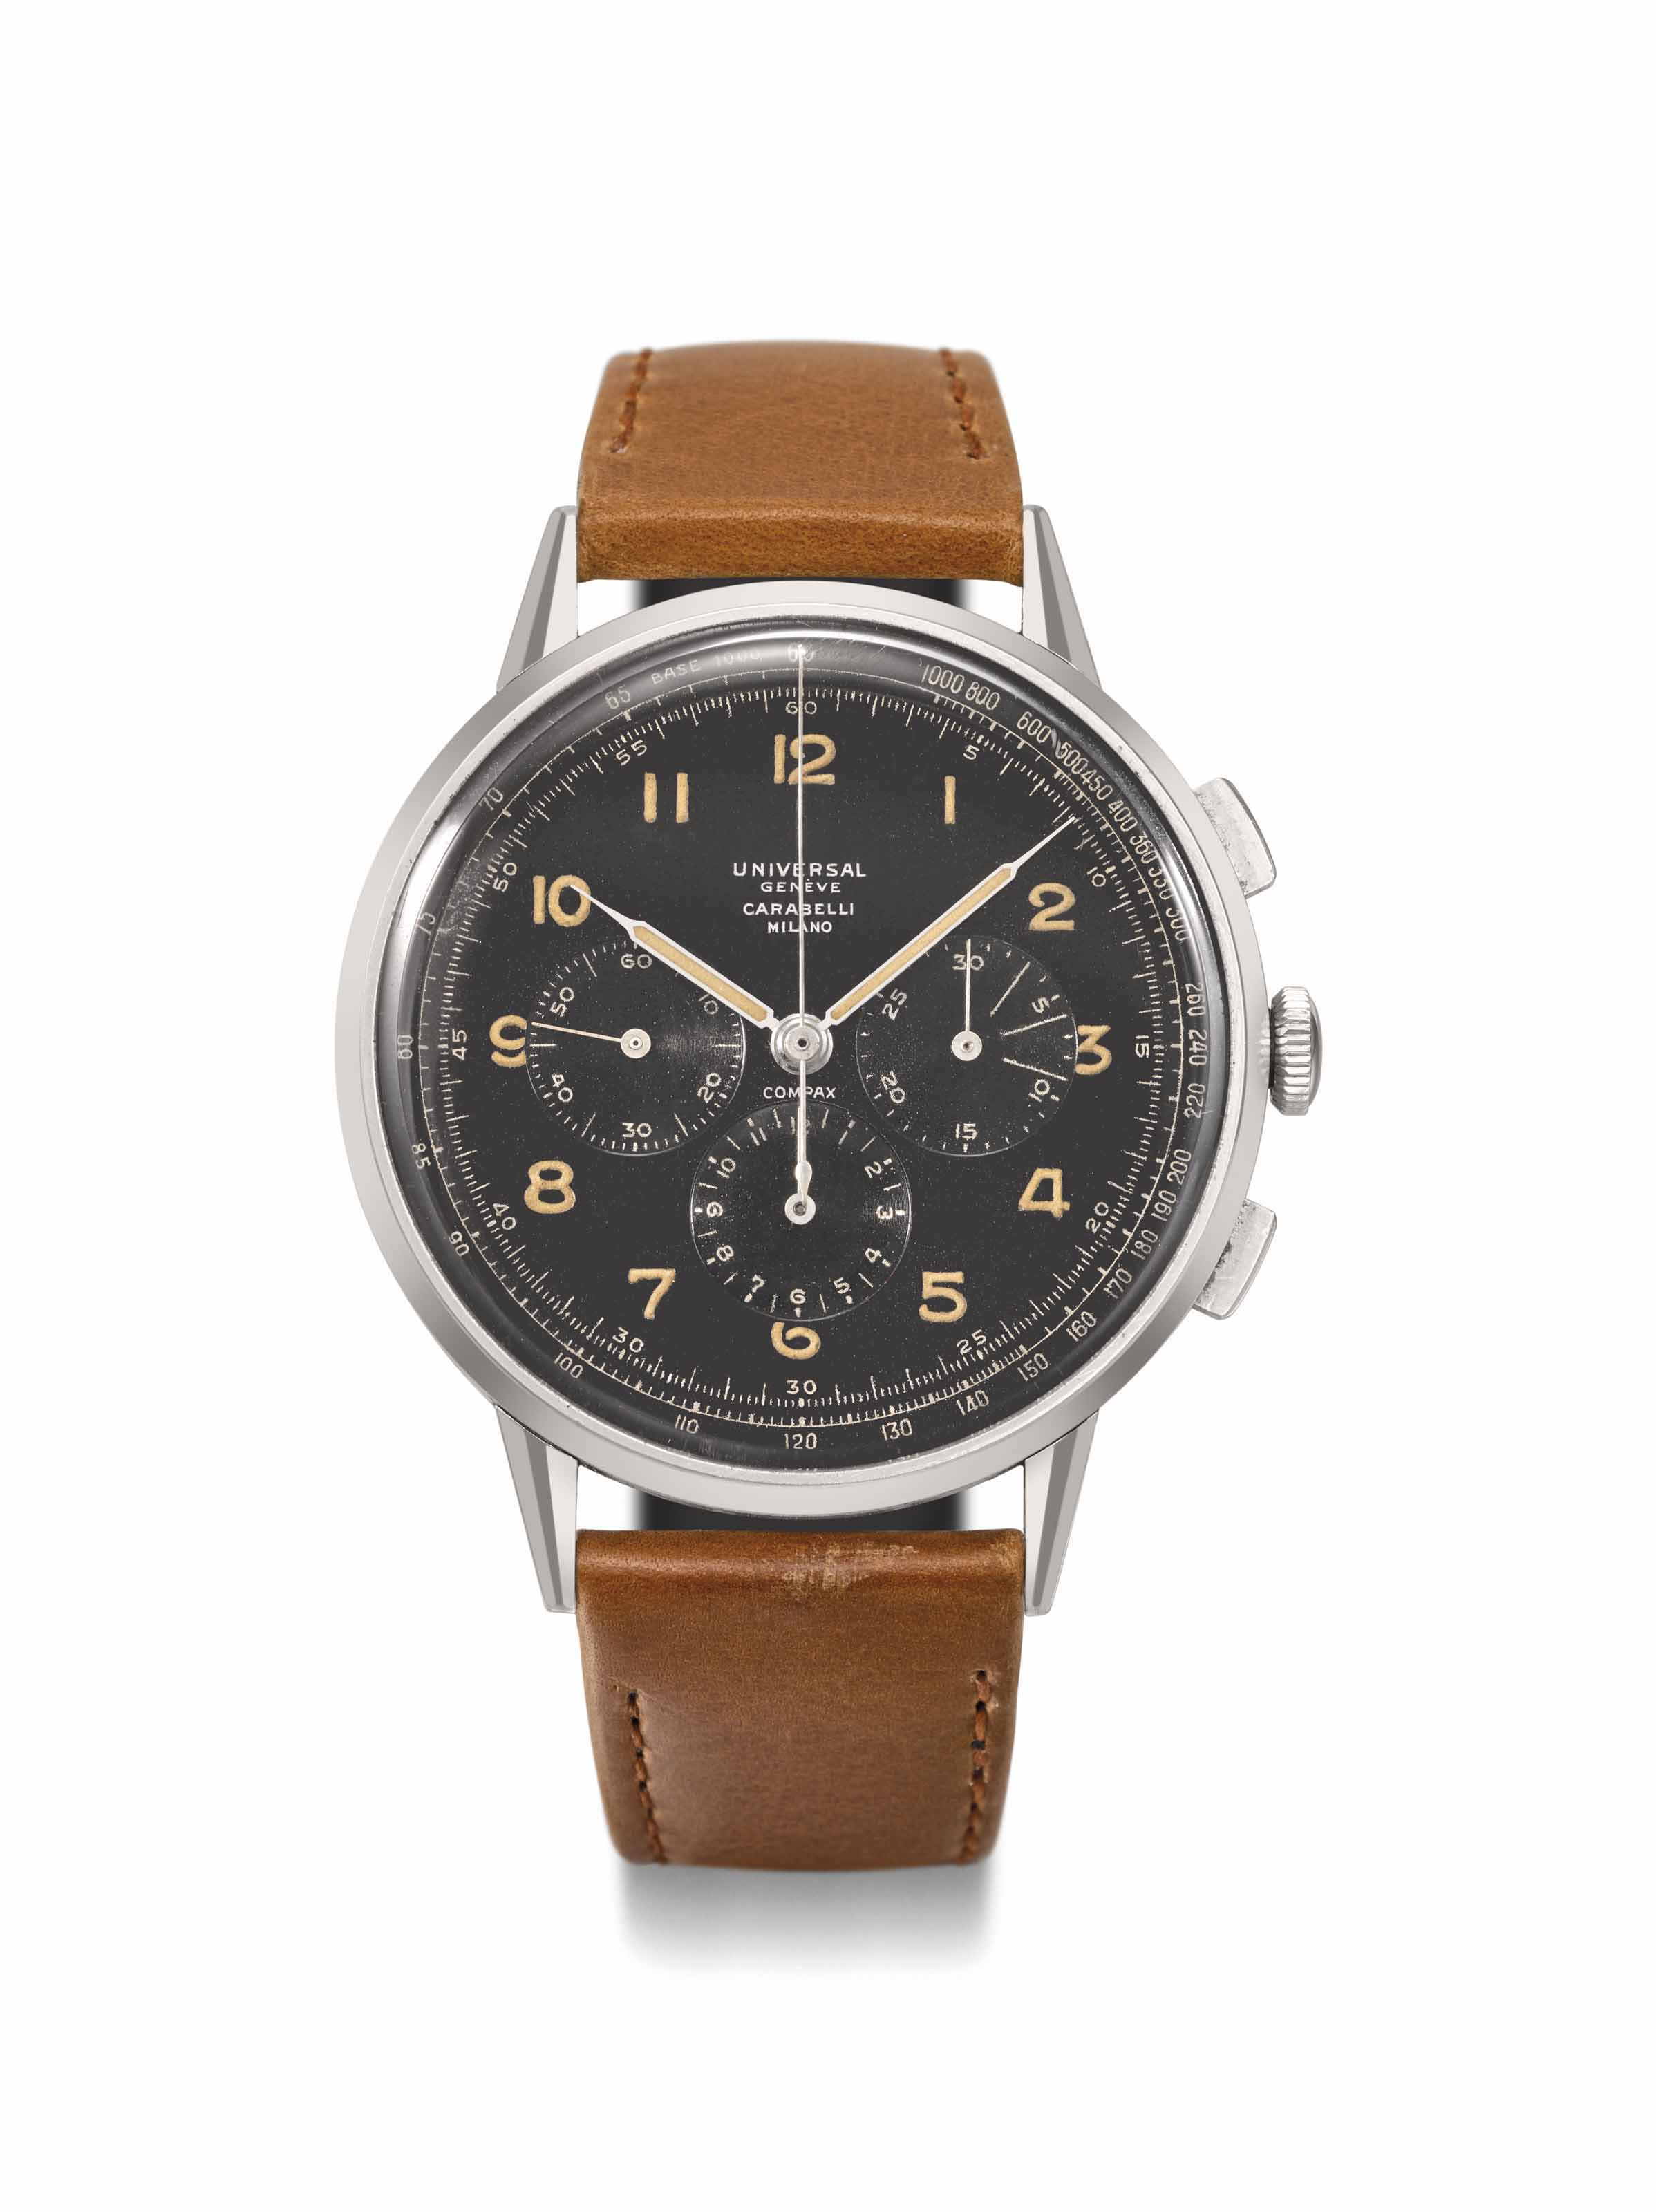 Universal Genève. A fine and very rare oversized stainless steel military chronograph wristwatch with registers, tachometer scale and black dial